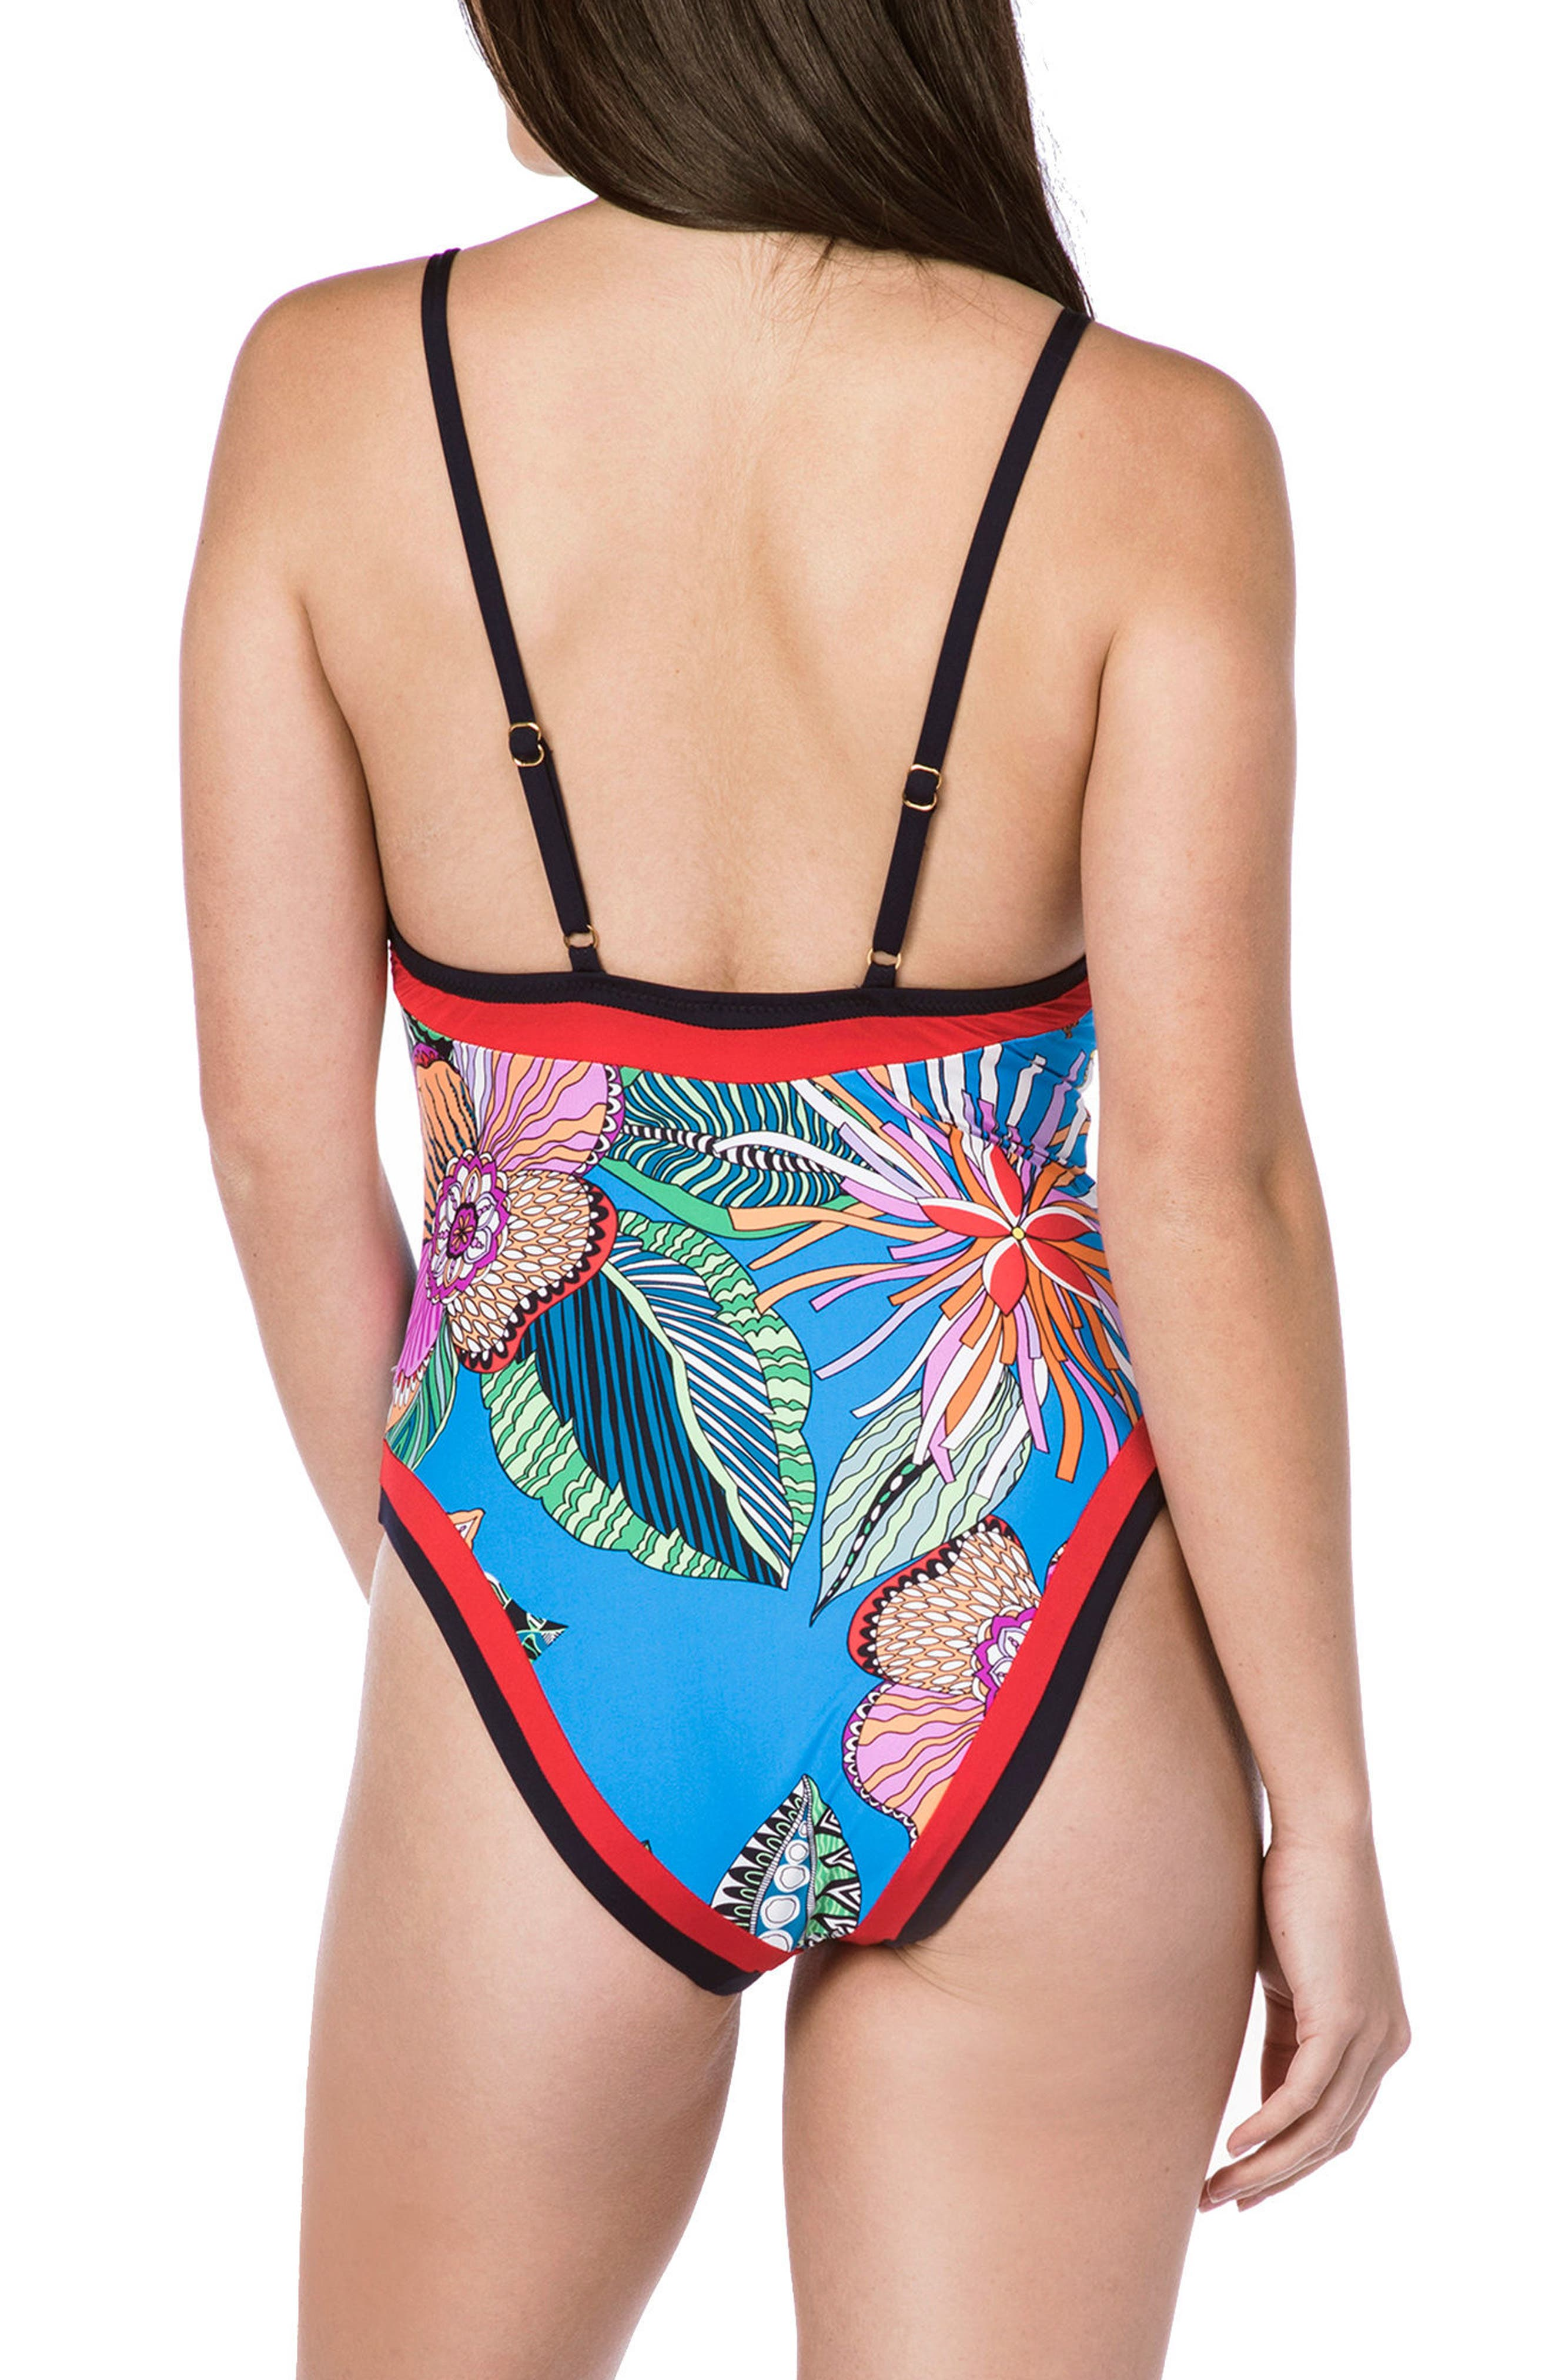 Tahiti Tropical One-Piece Swimsuit,                             Alternate thumbnail 2, color,                             Blue Multi